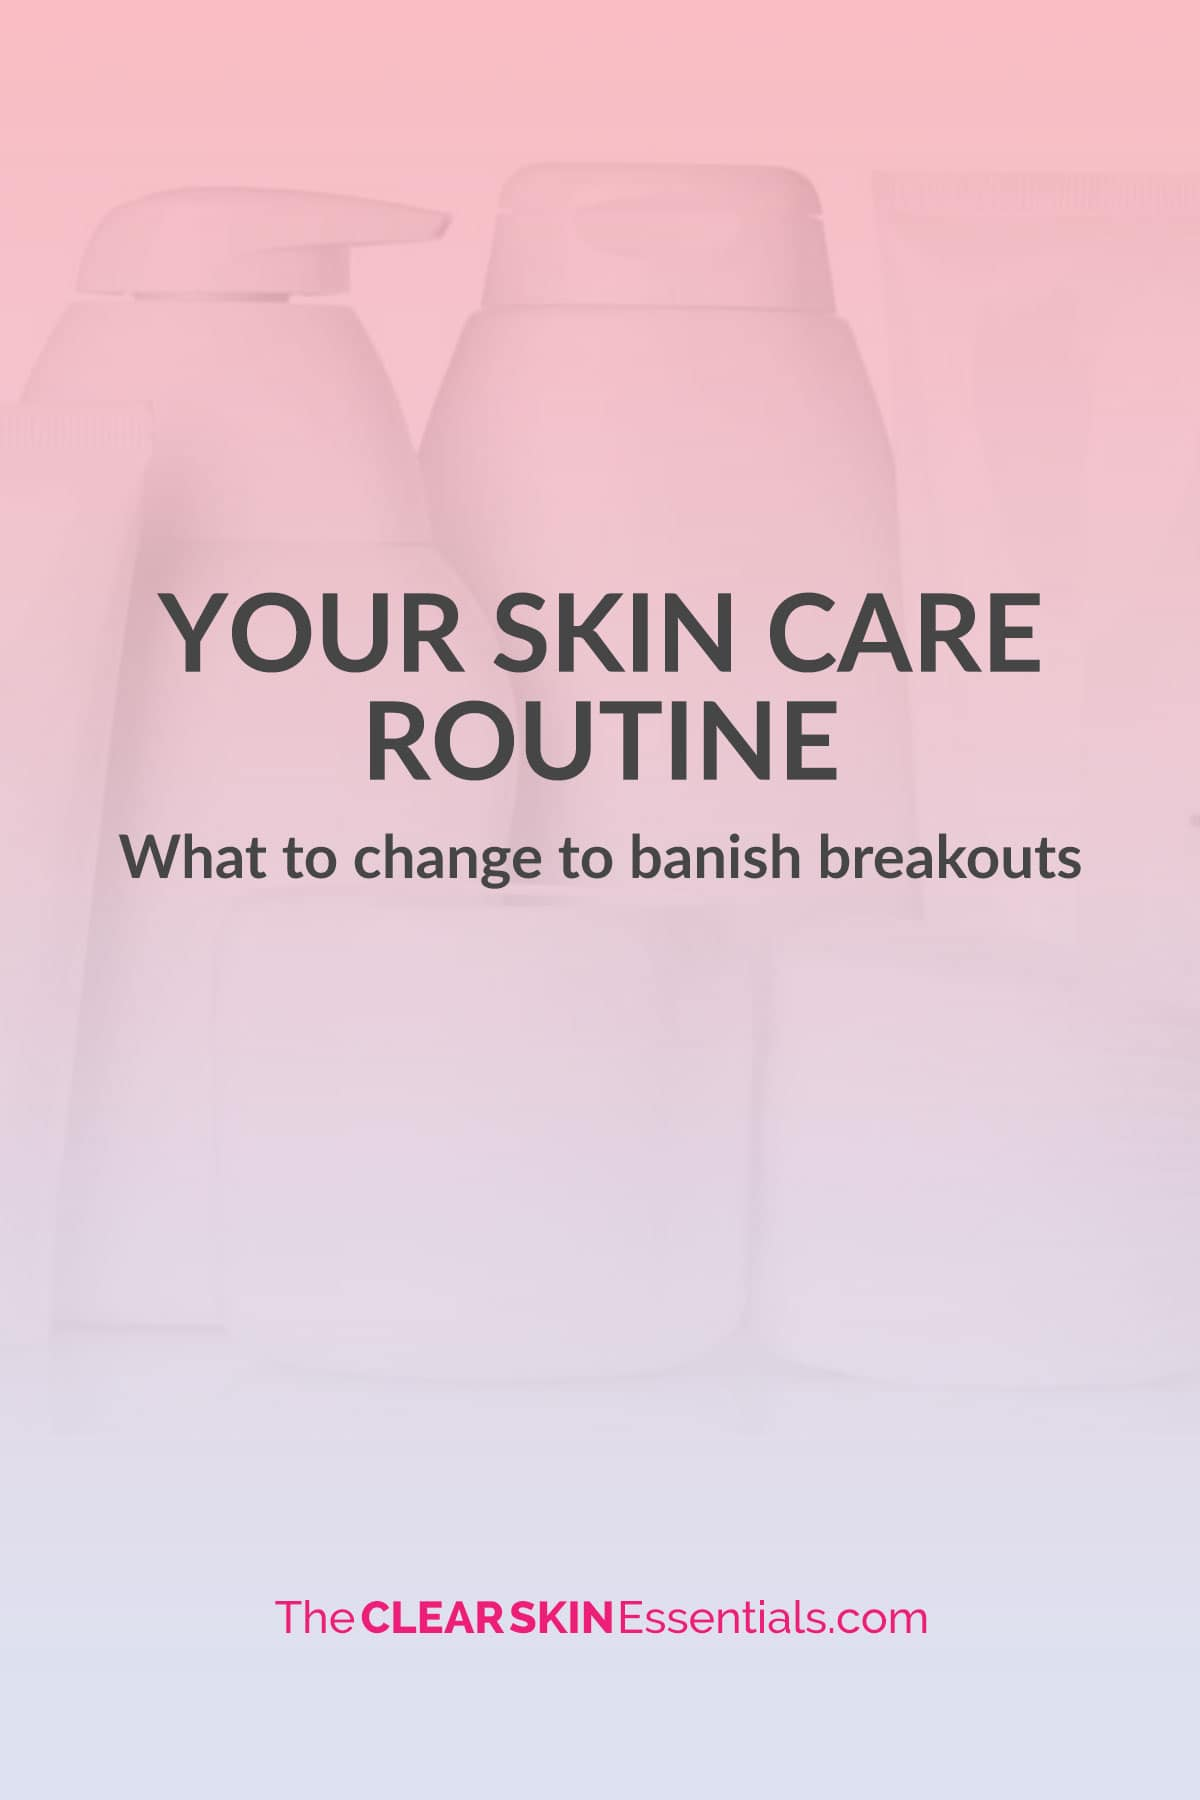 Learn how your skin care routine is making your breakouts and acne worse, and what to do instead.